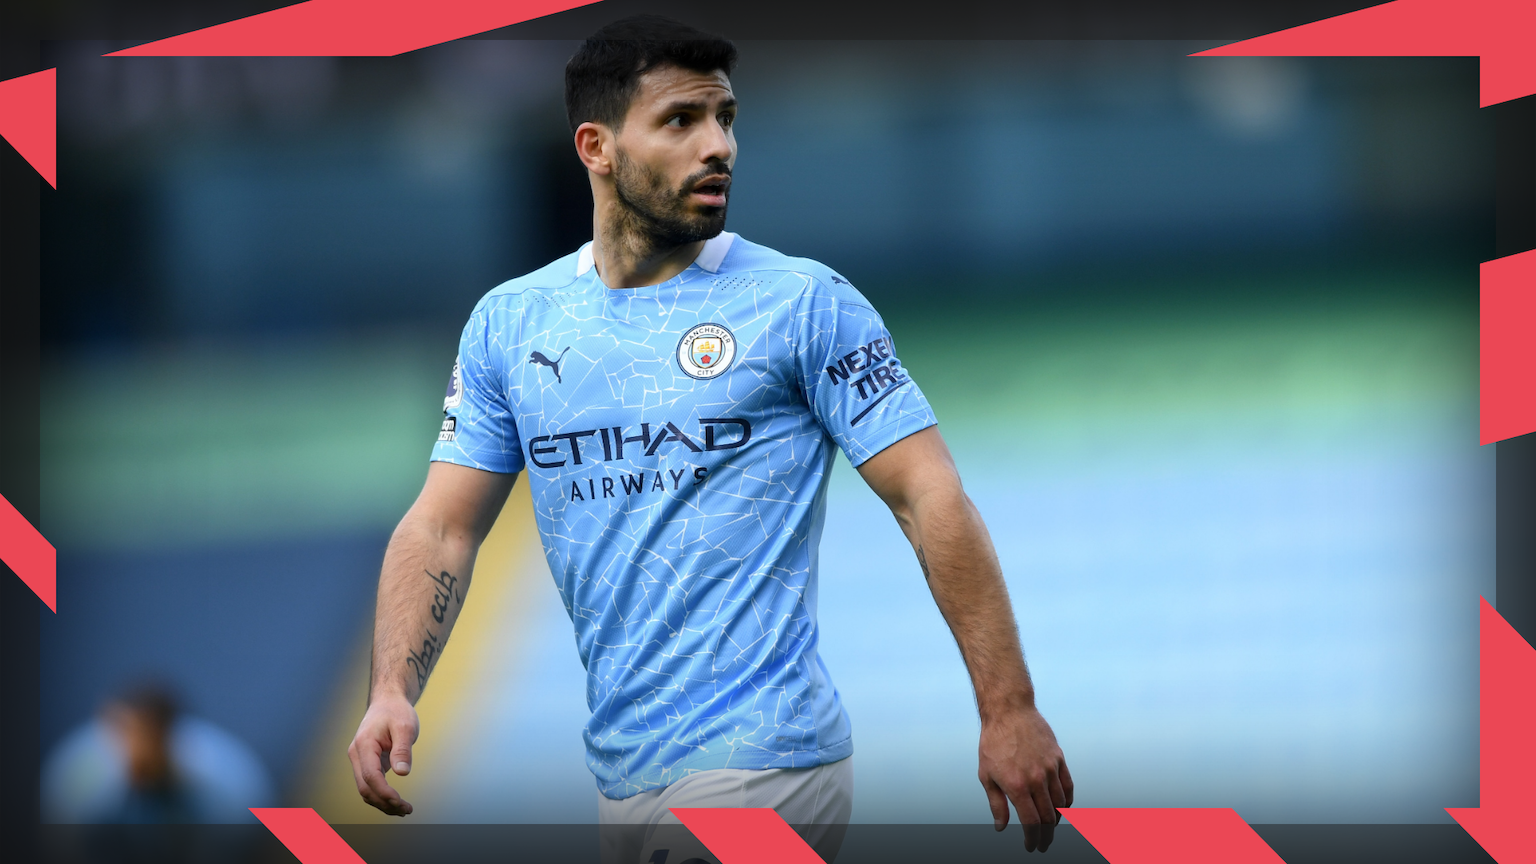 Discover: 4 potential replacements for Sergio Agüero - Twenty3